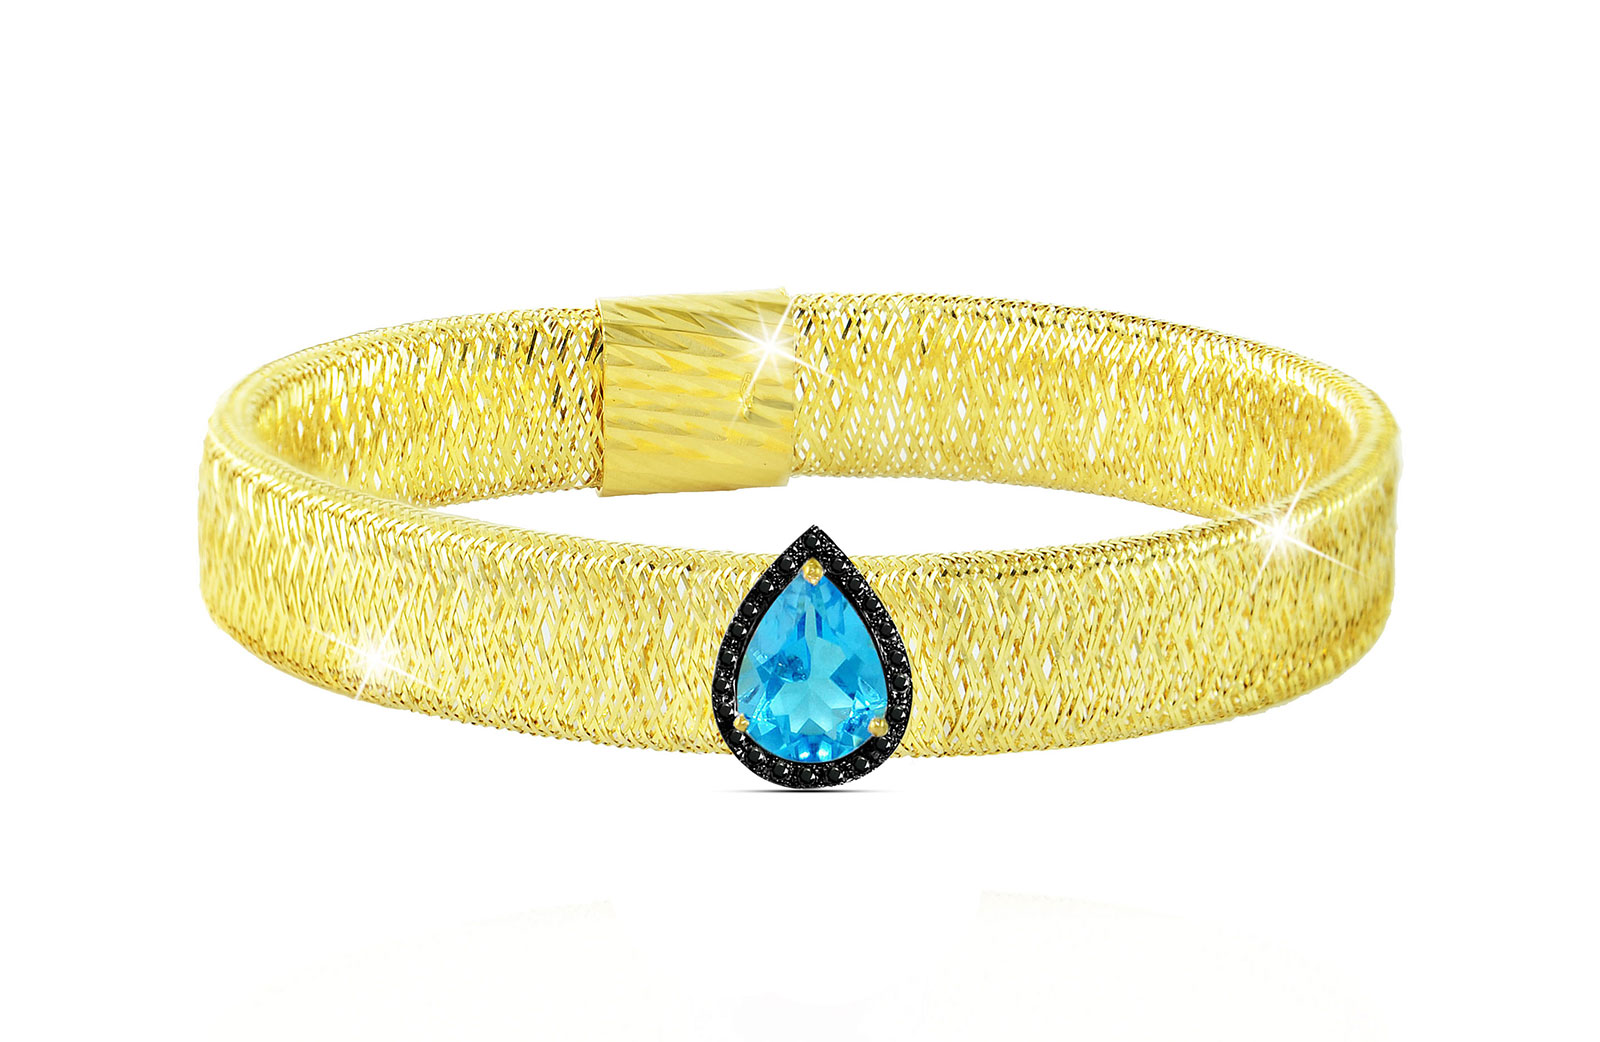 Vera Perla 18K Gold 0.12ct Black Diamonds, Topaz Mesh Bracelet